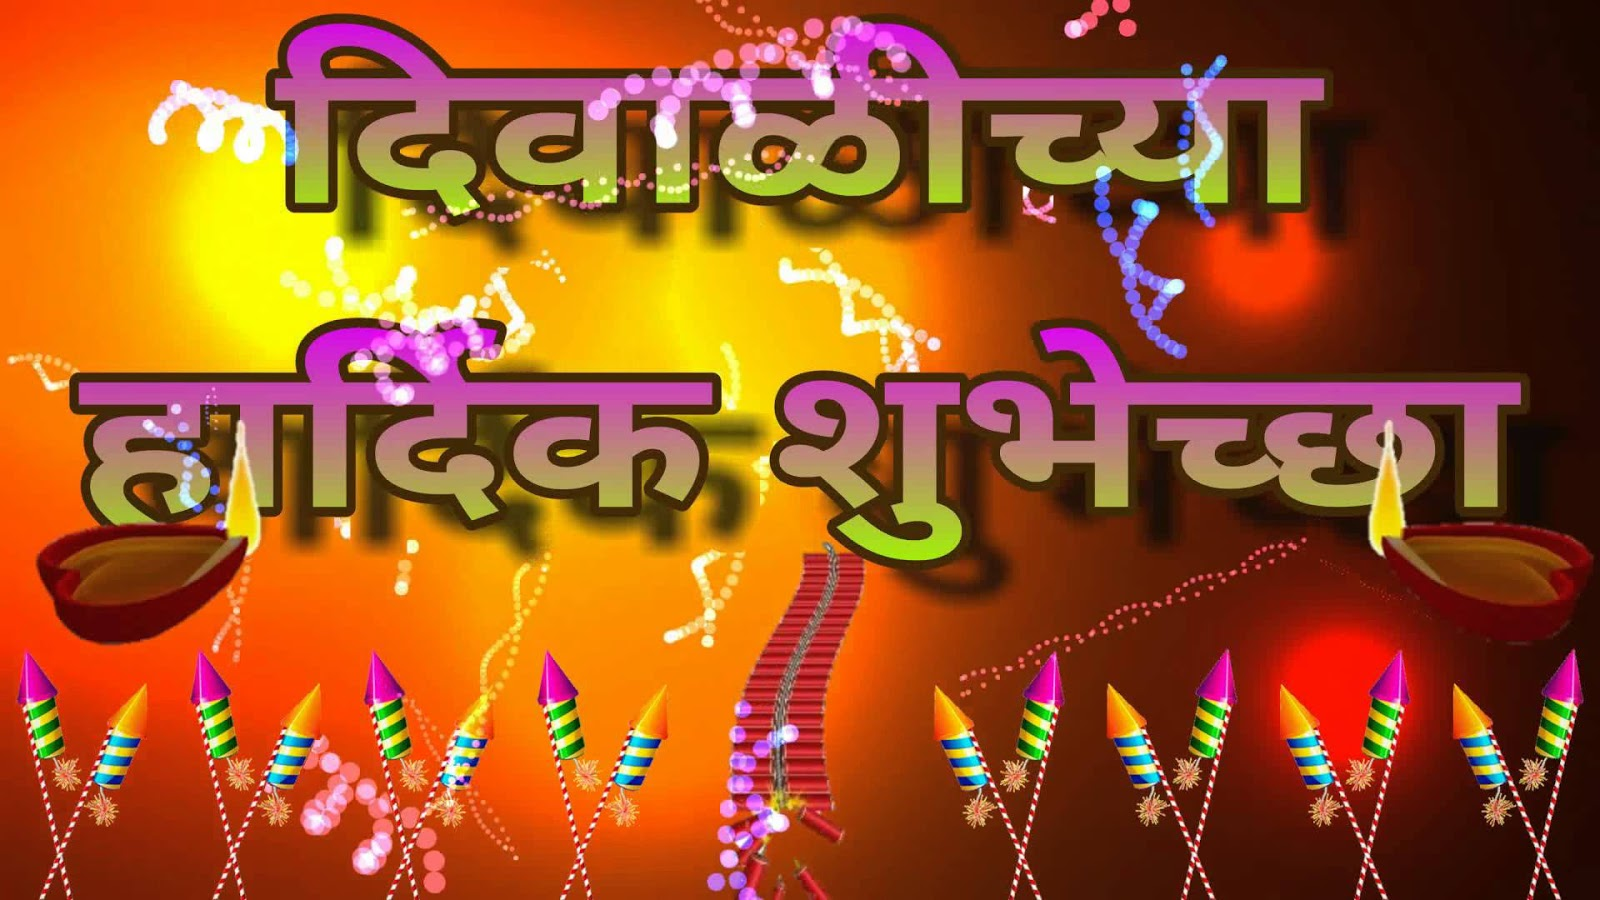 October 2017 happy diwali wishes quotes gifs images latest october 2017 happy diwali wishes quotes gifs images latest kristyandbryce Gallery